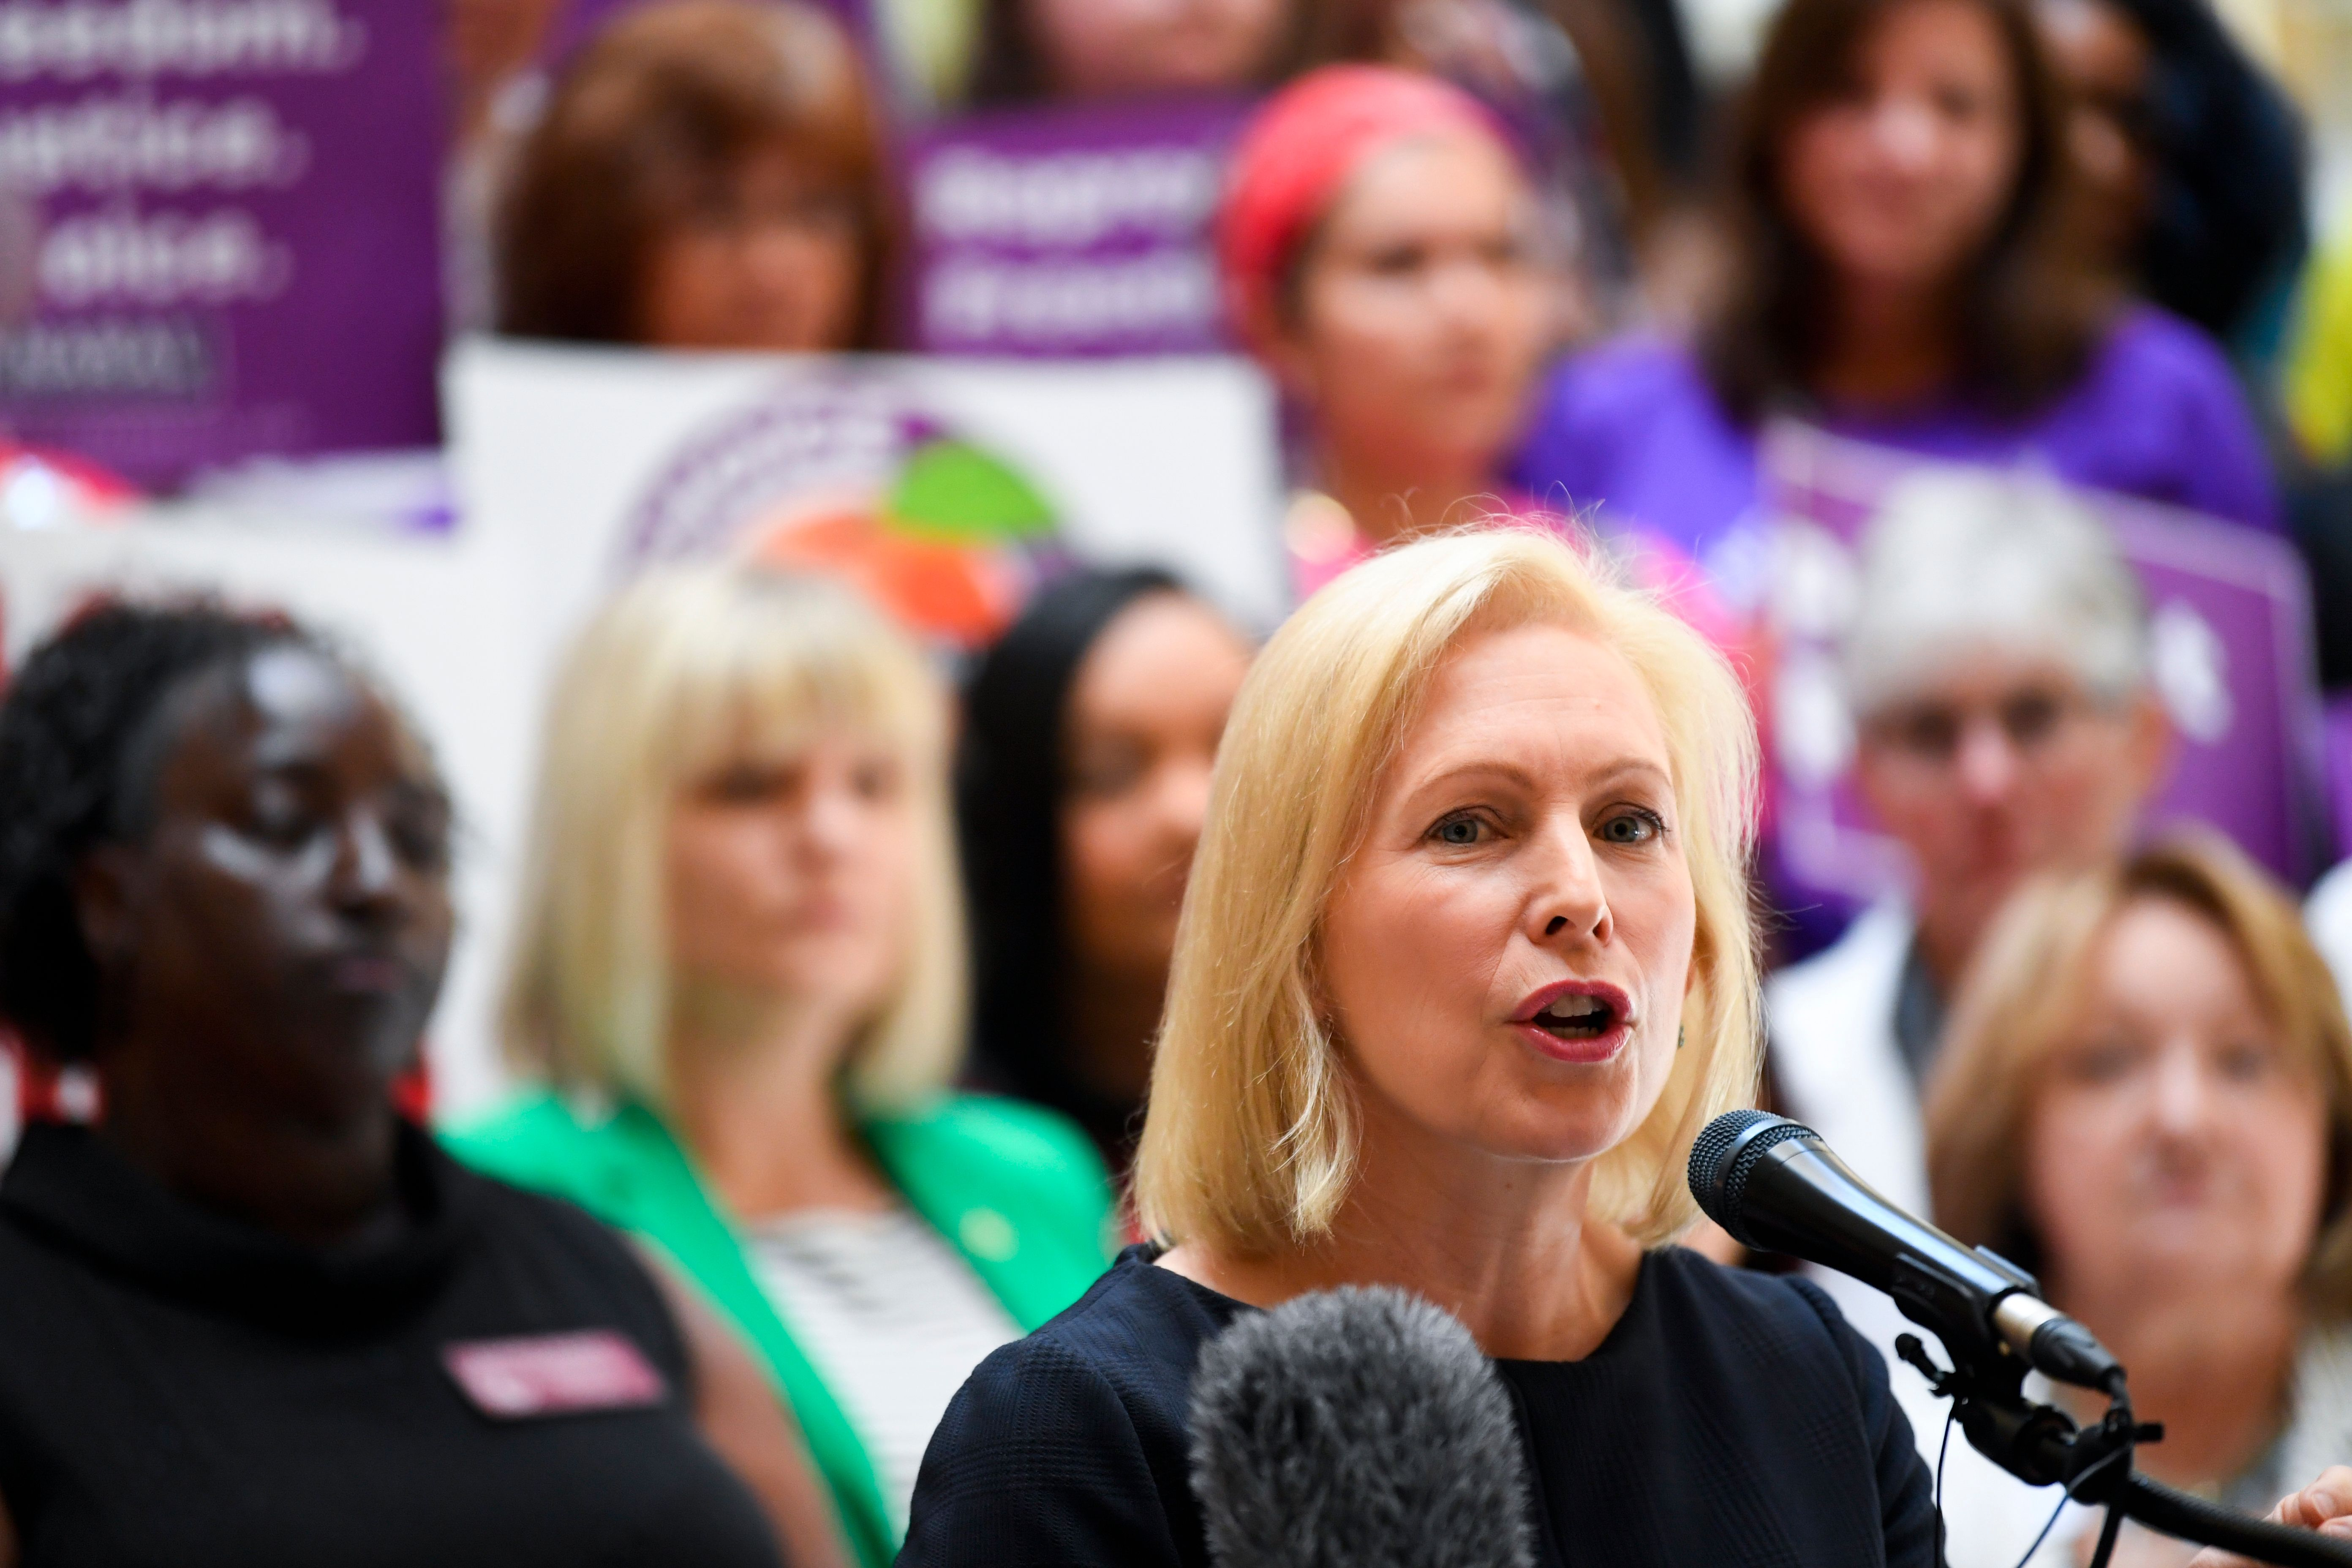 Democratic presidential candidate Sen. Kirsten Gillibrand (D-NY) addresses an event at the Georgia State Capitol to speak out against the recently passed heartbeat bill on May 16, 2019. (John Amis/AFP/Getty Images)